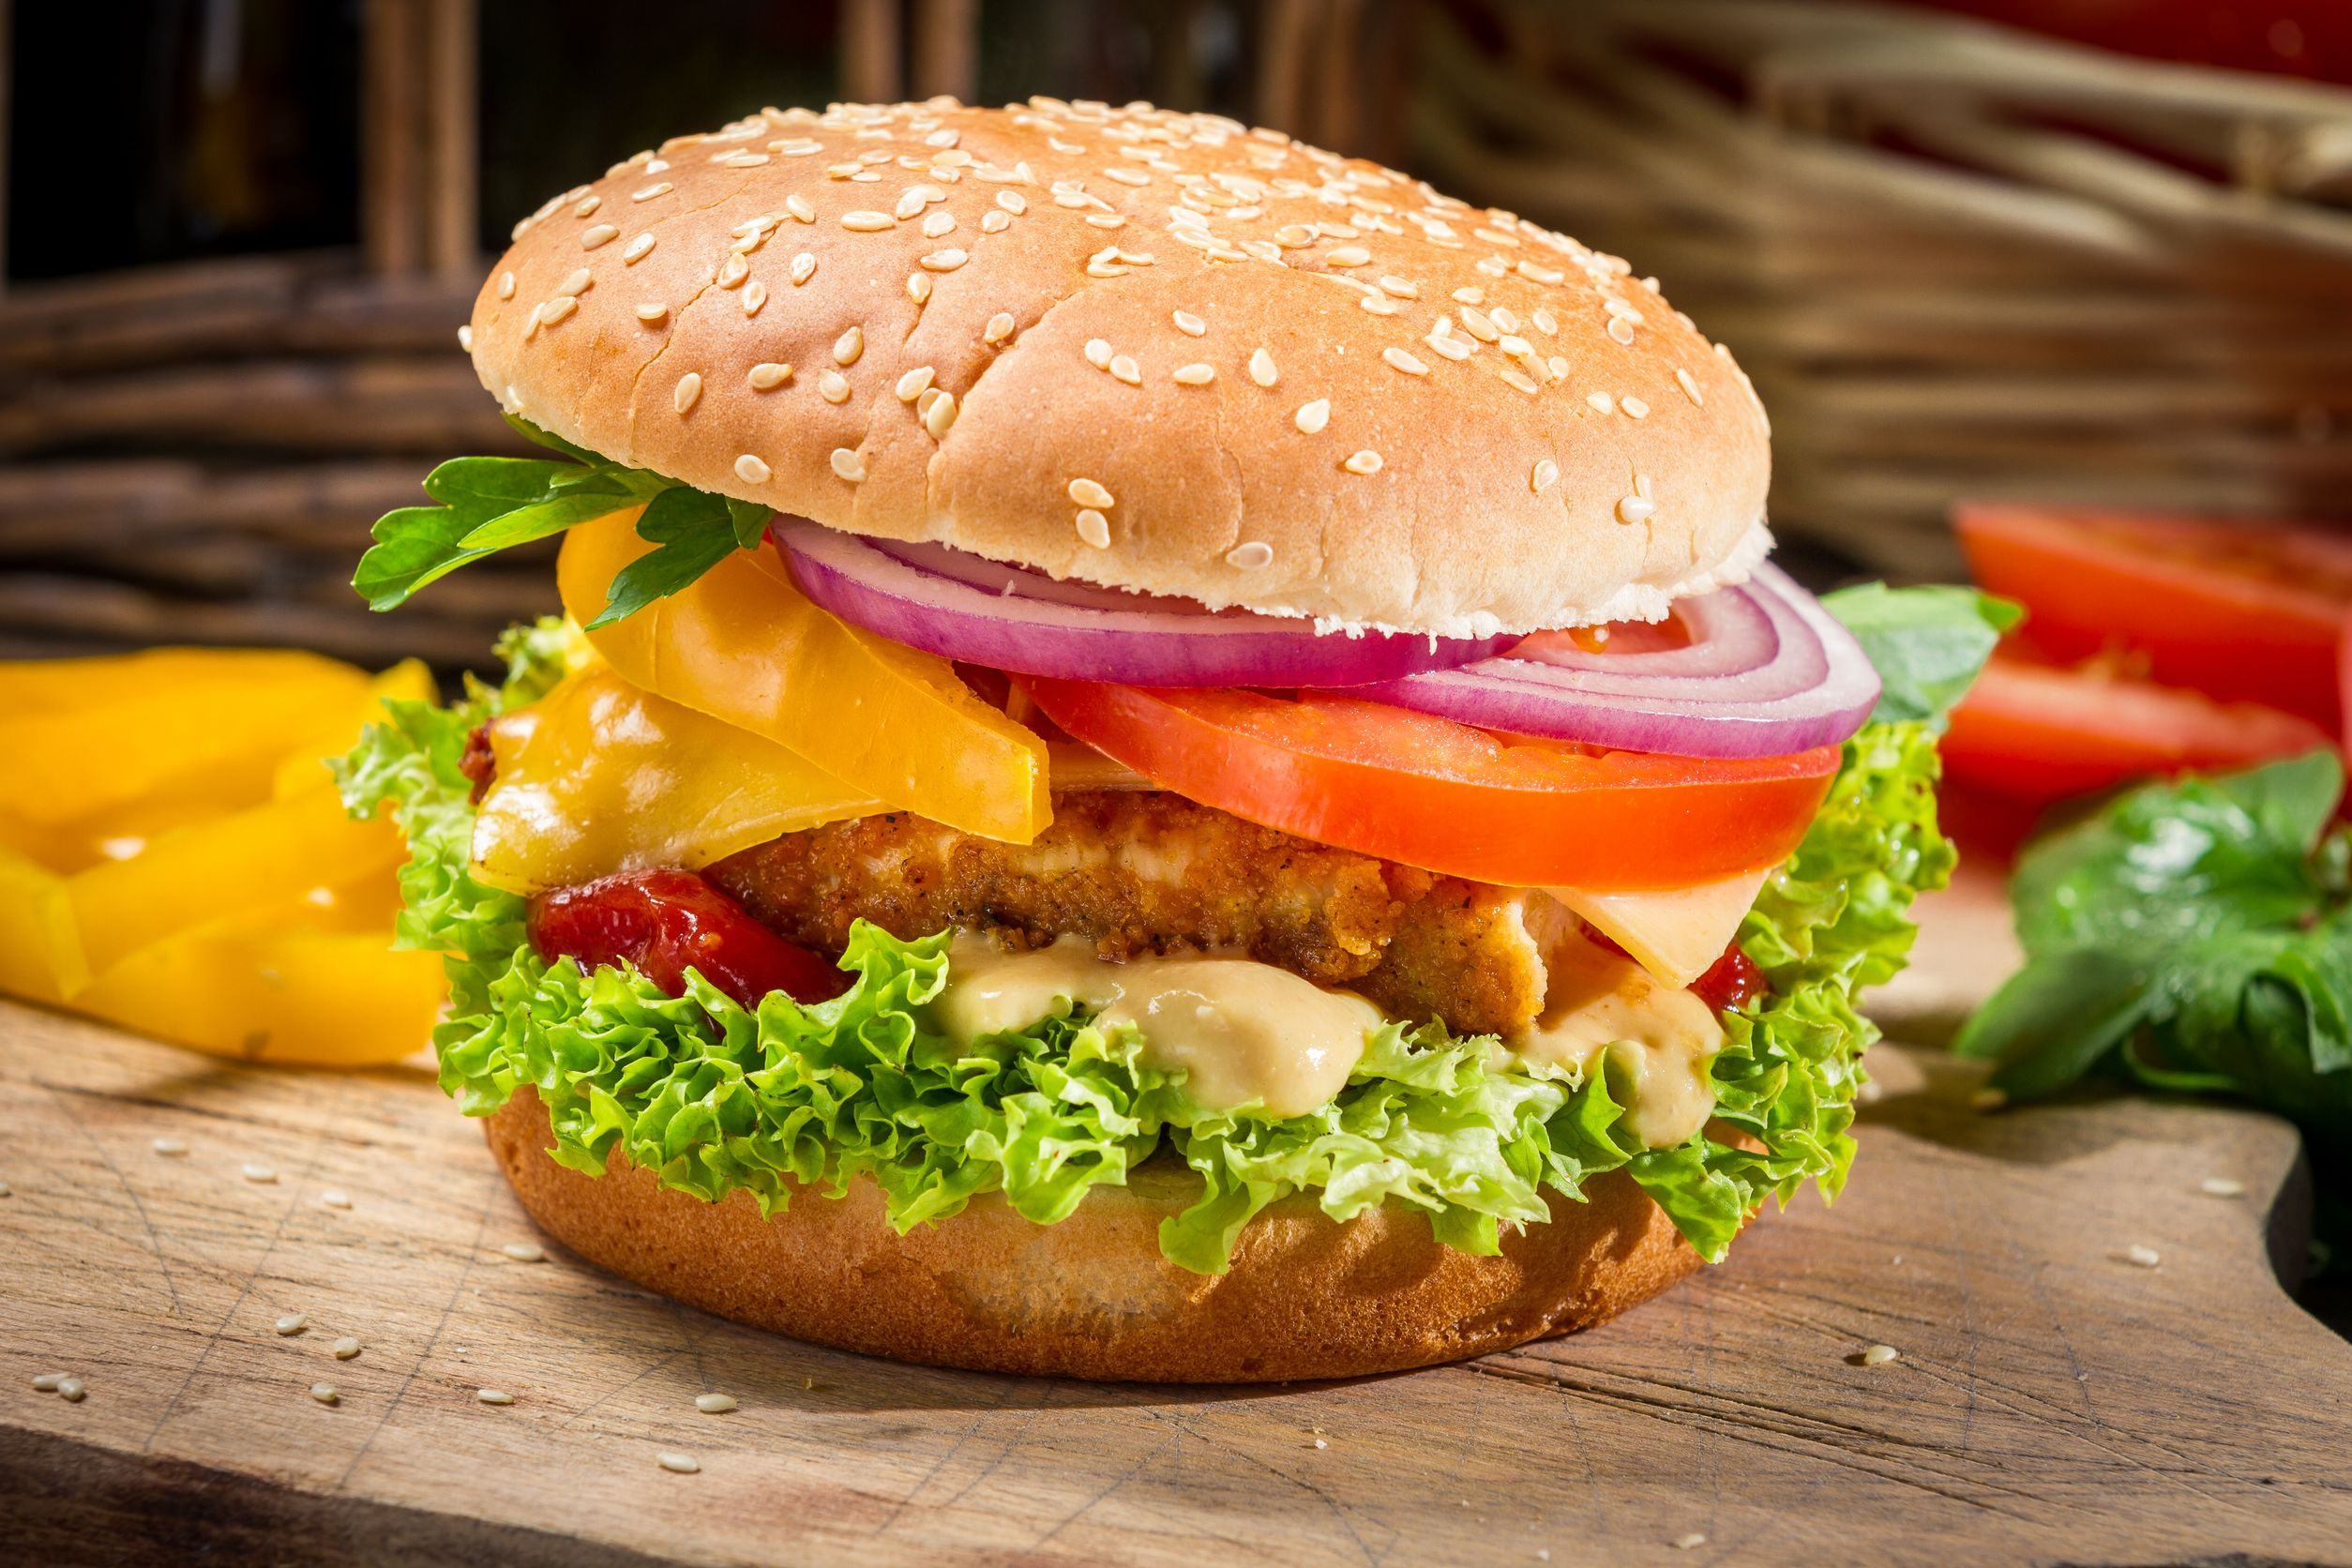 18701029 - closeup of a hamburger with chicken and vegetables